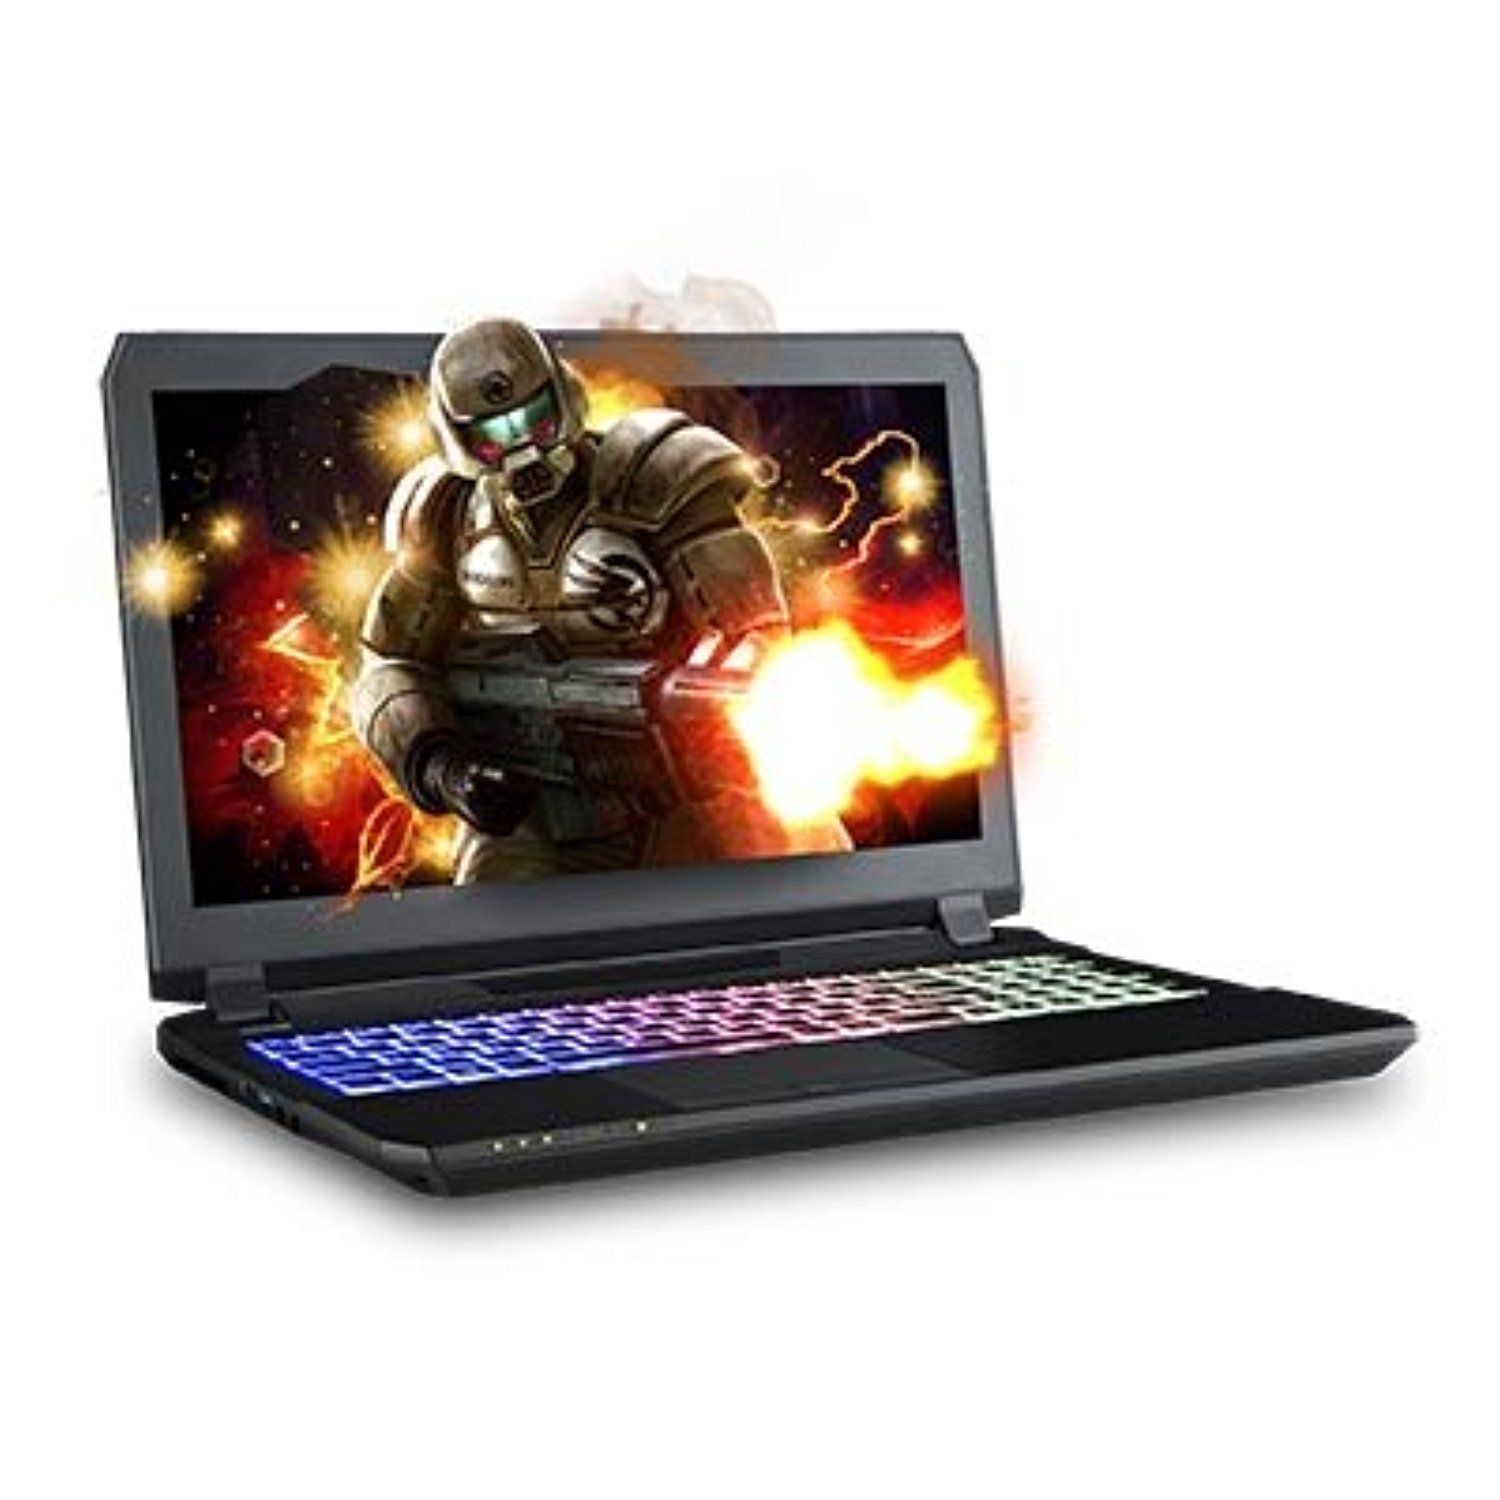 Clevo Prostar P650rp6 15 6 Fhd Ips Matte Display With G Sync Intel Core I7 6700hq 16gb Ddr4 Gtx 1060 Best Gaming Laptop Cheap Gaming Laptop Gaming Laptops